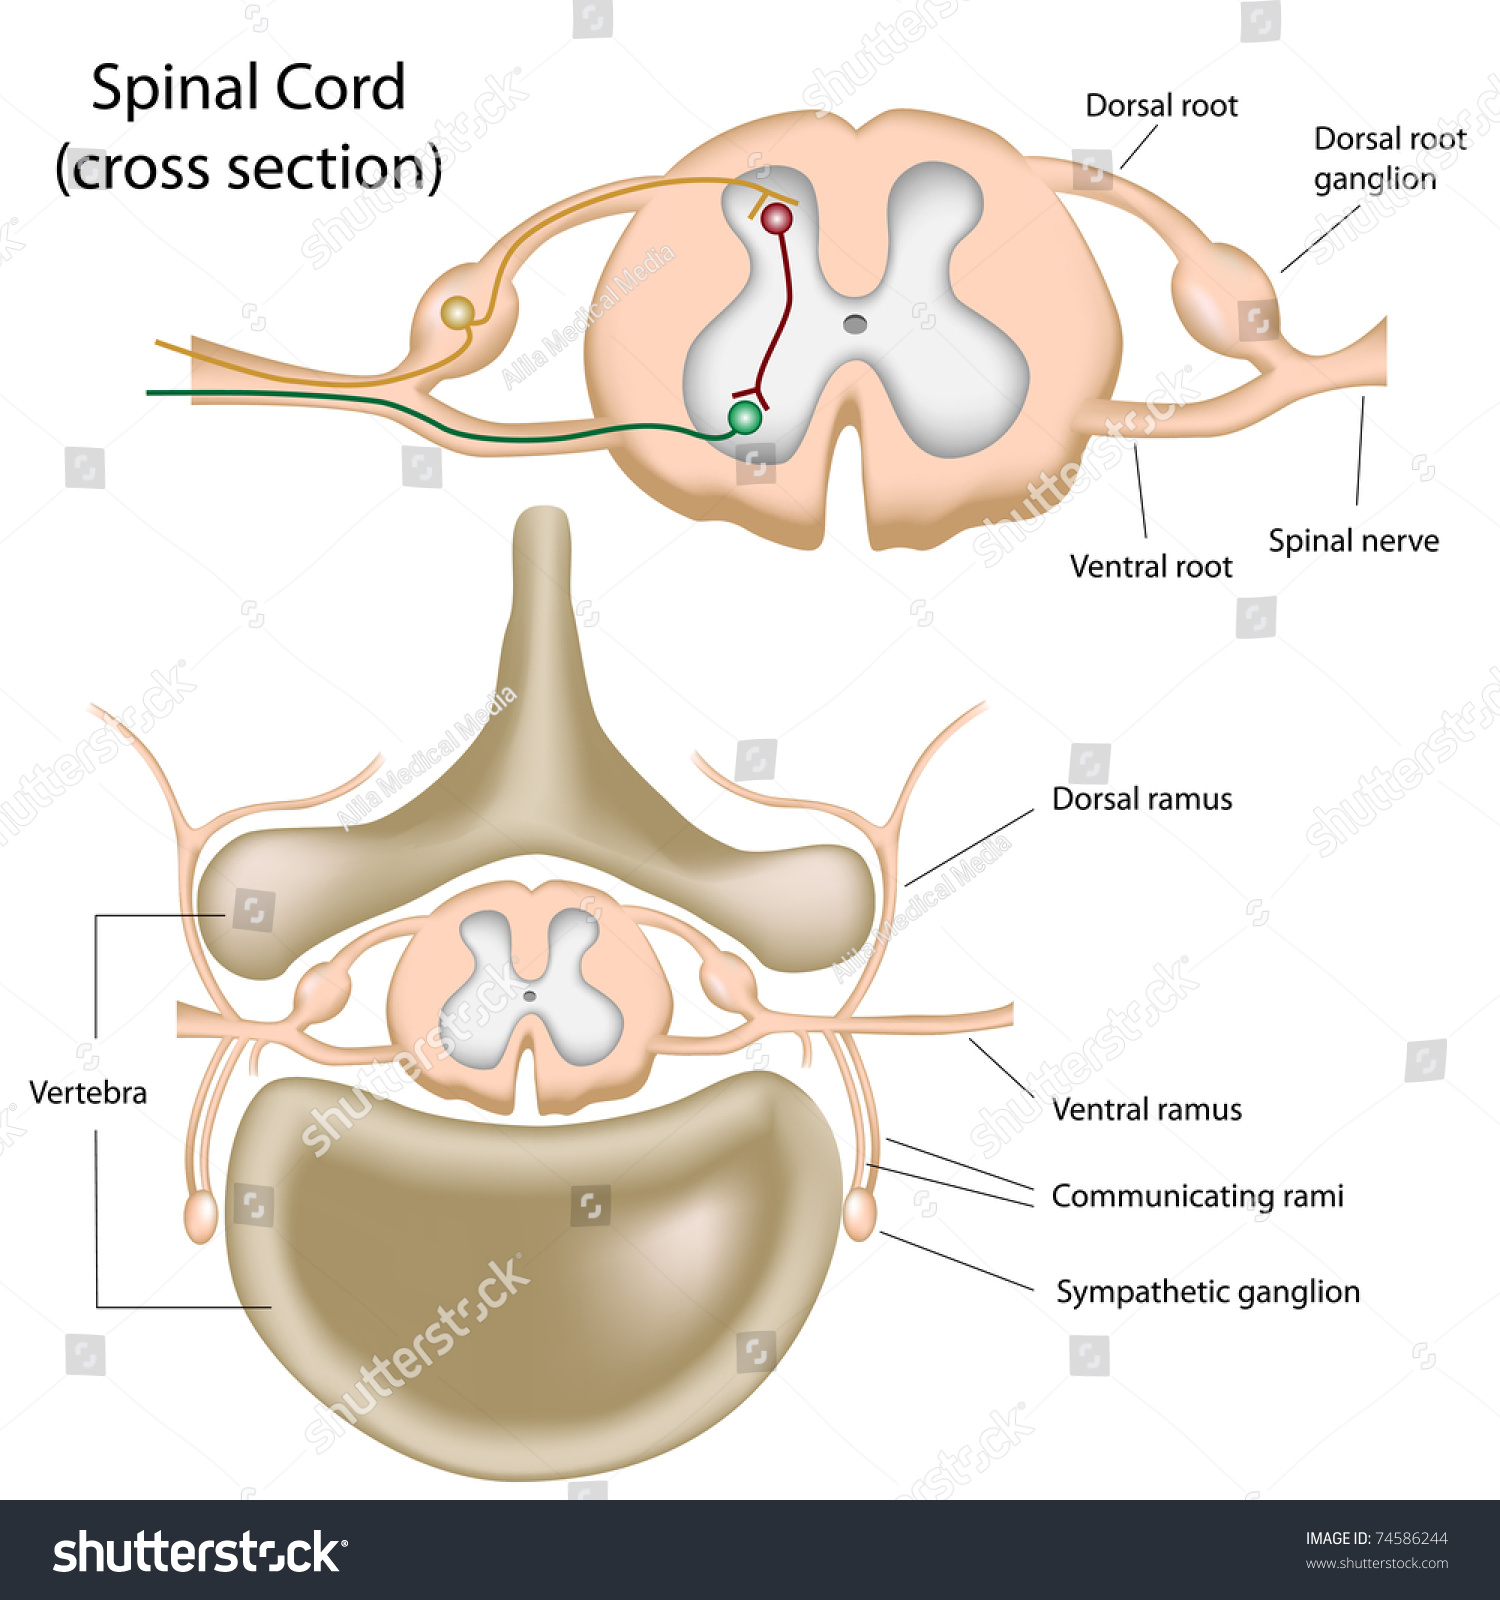 Cross section spinal cord stock illustration 74586244 shutterstock cross section of the spinal cord pooptronica